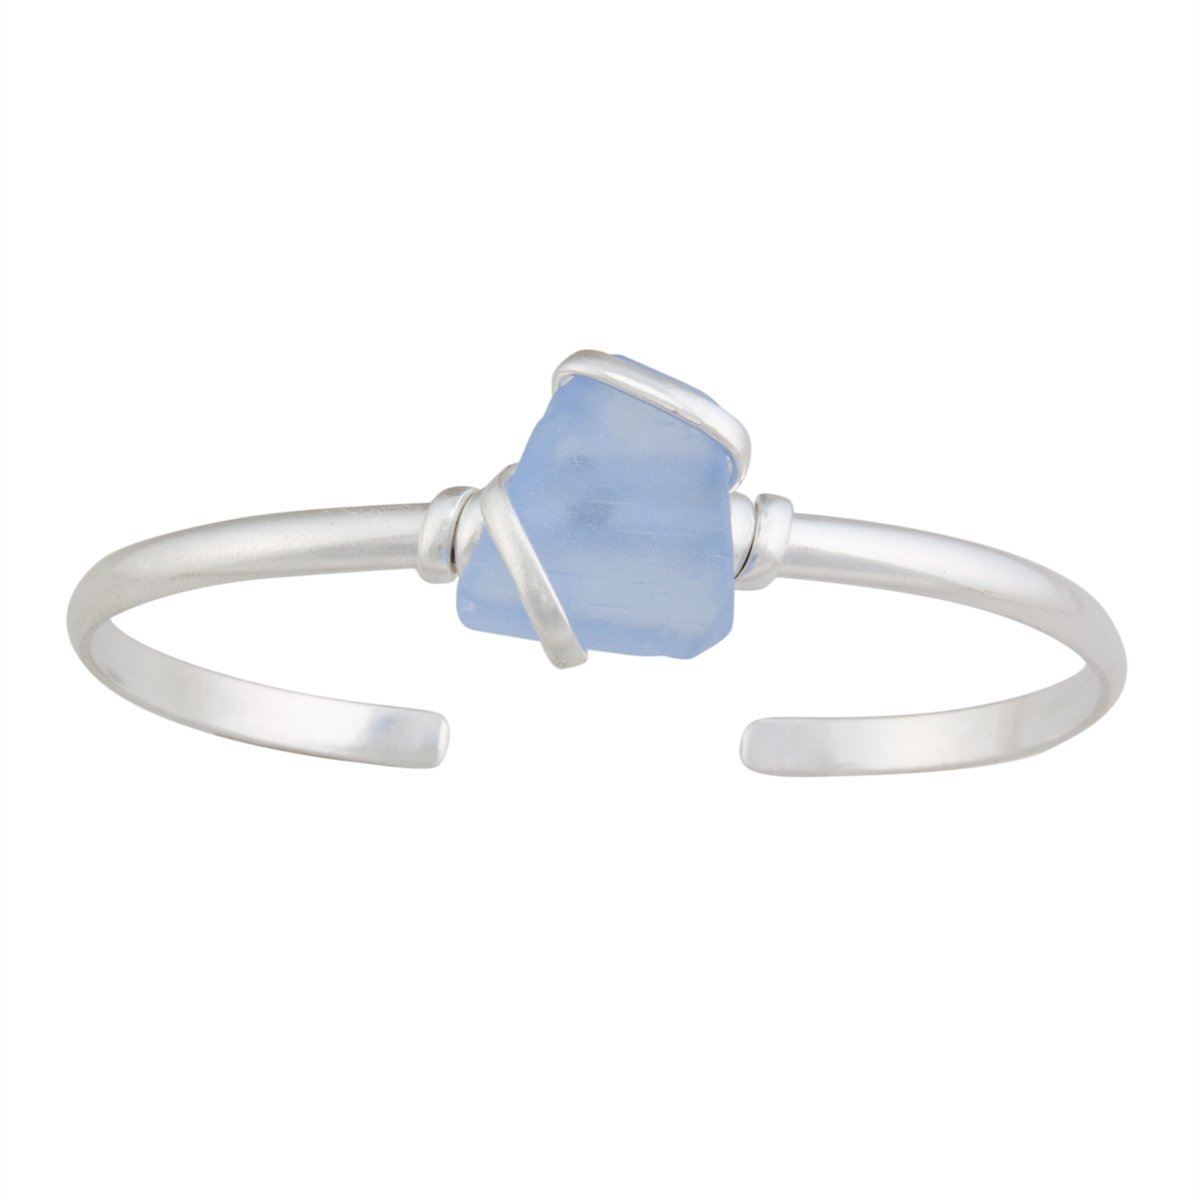 Alpaca Recycled Glass Mini Cuff - Carolina Blue | Charles Albert Jewelry